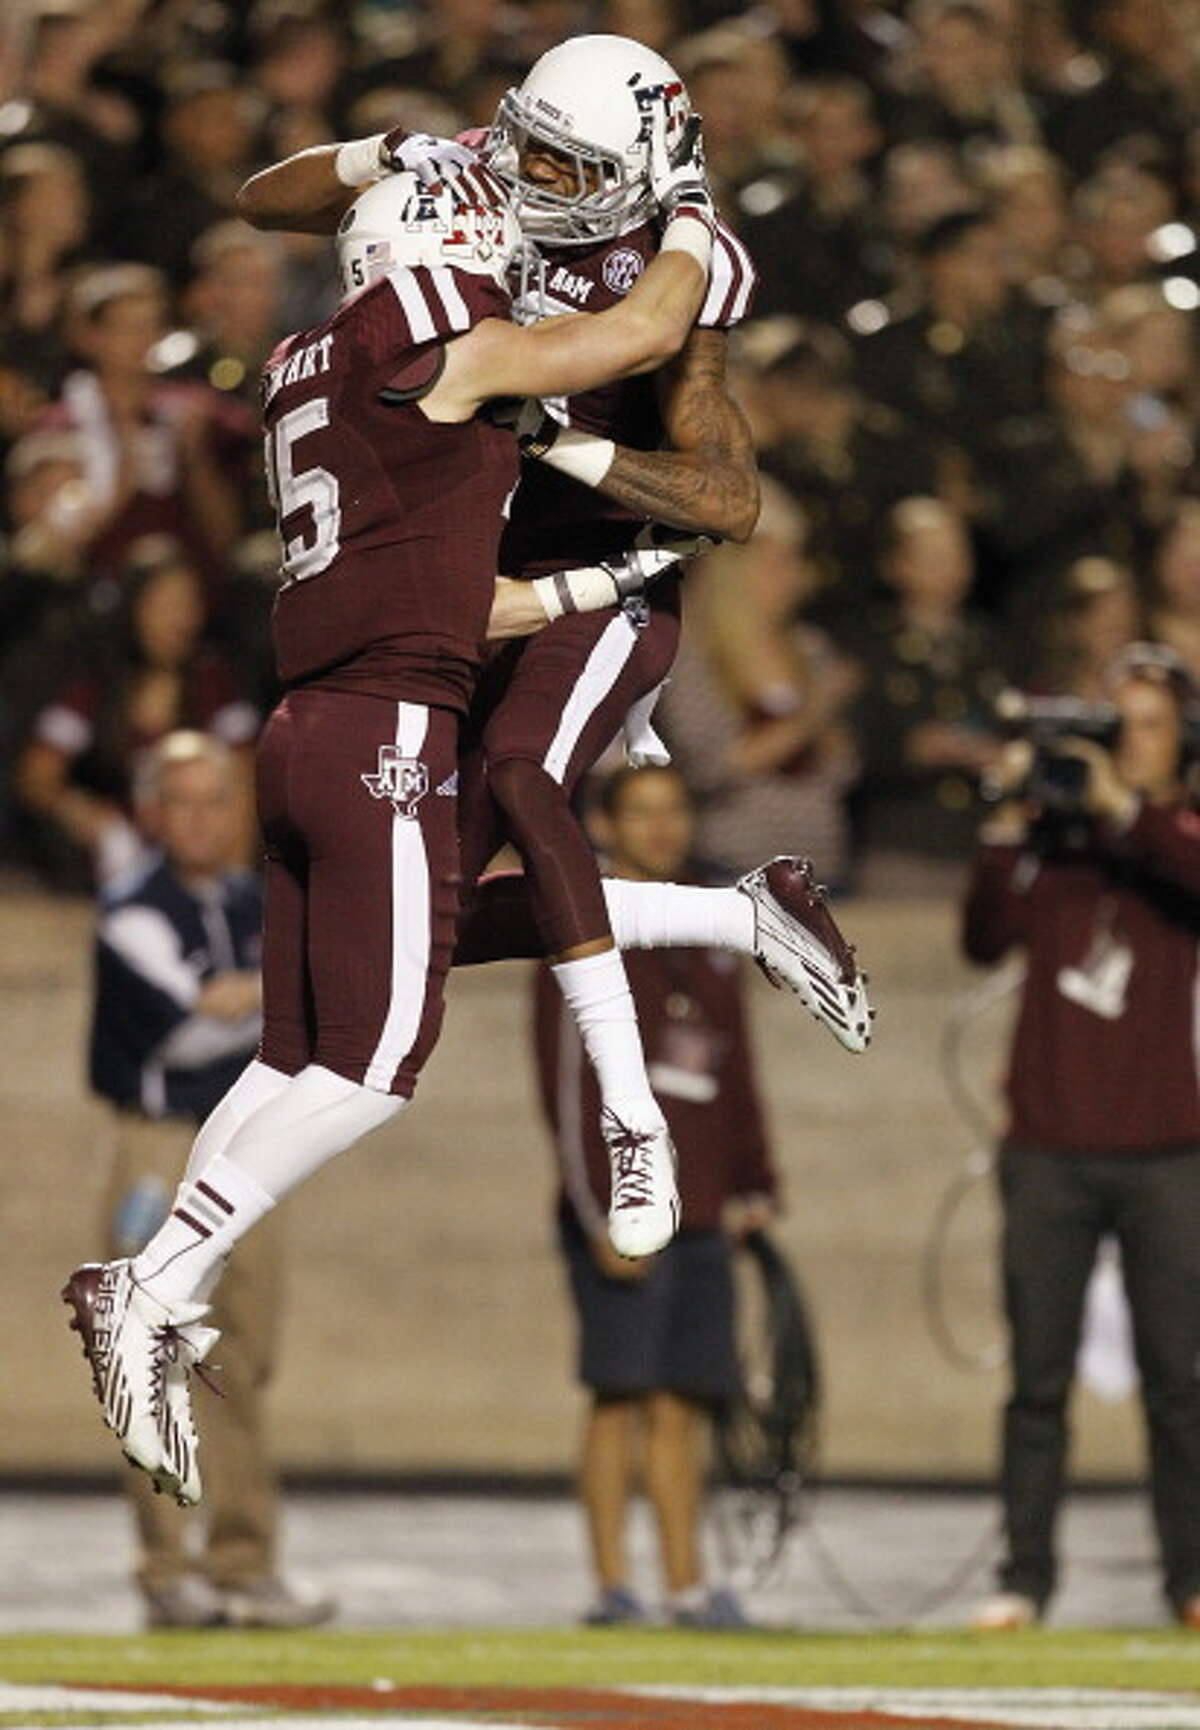 Travis Labhart #15 of the Texas A&M Aggies celebrates with Mike Evans #13 after scoring in the first quarter against the UTEP Miners at Kyle Field on November 2, 2013 in College Station, Texas.